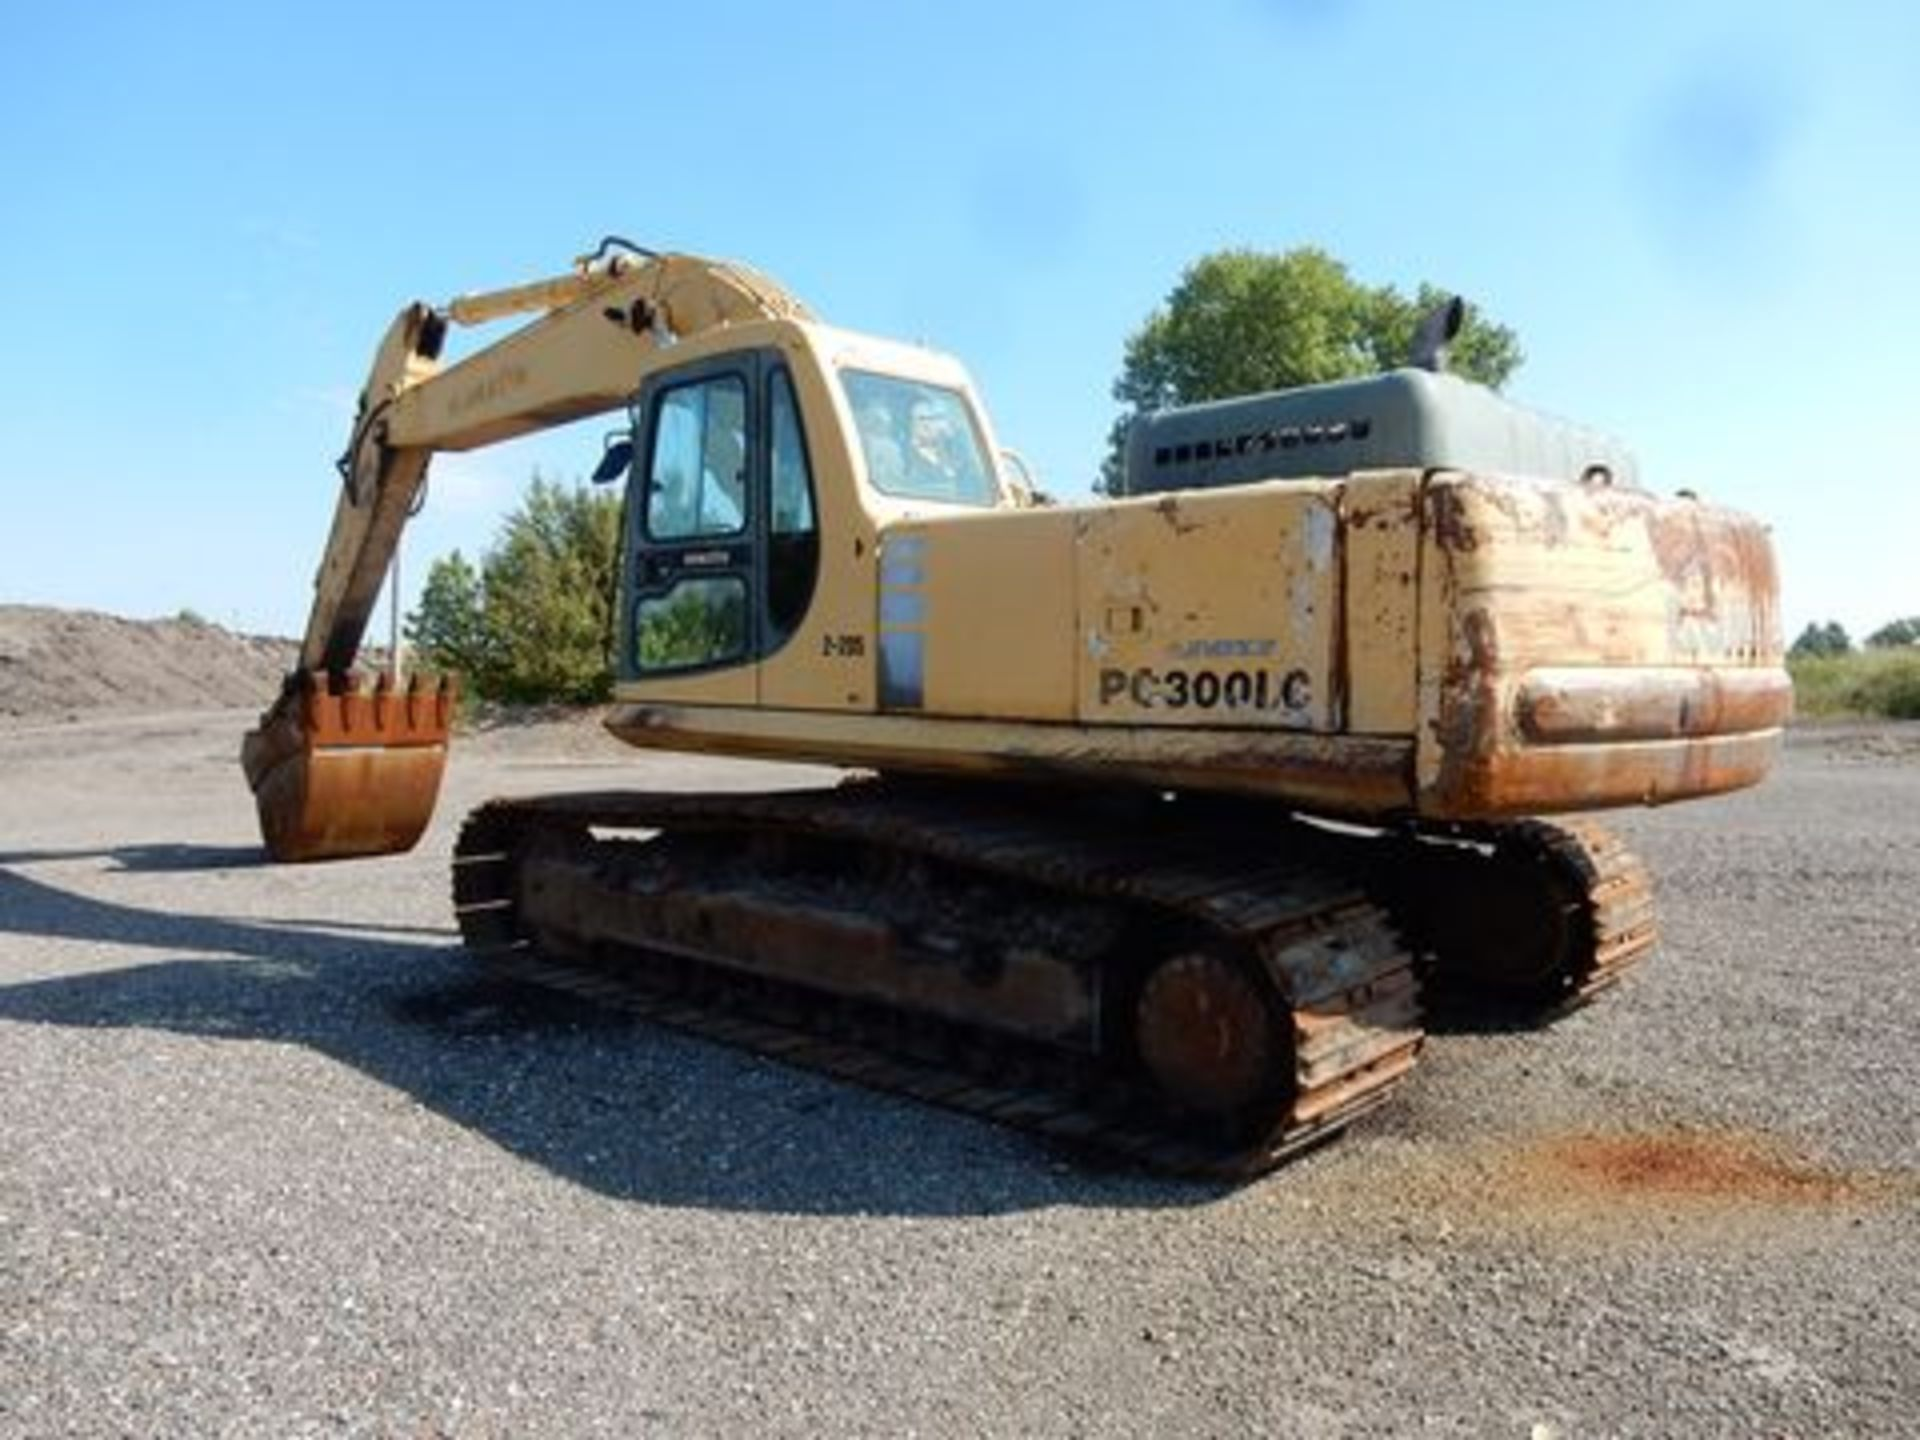 1997 KOMATSU EXCAVATOR, M# PC300LC-6LC, S/N A80735, HOURS N/A, 3-YD BUCKET, MISSING FRONT GLASS - Image 4 of 6